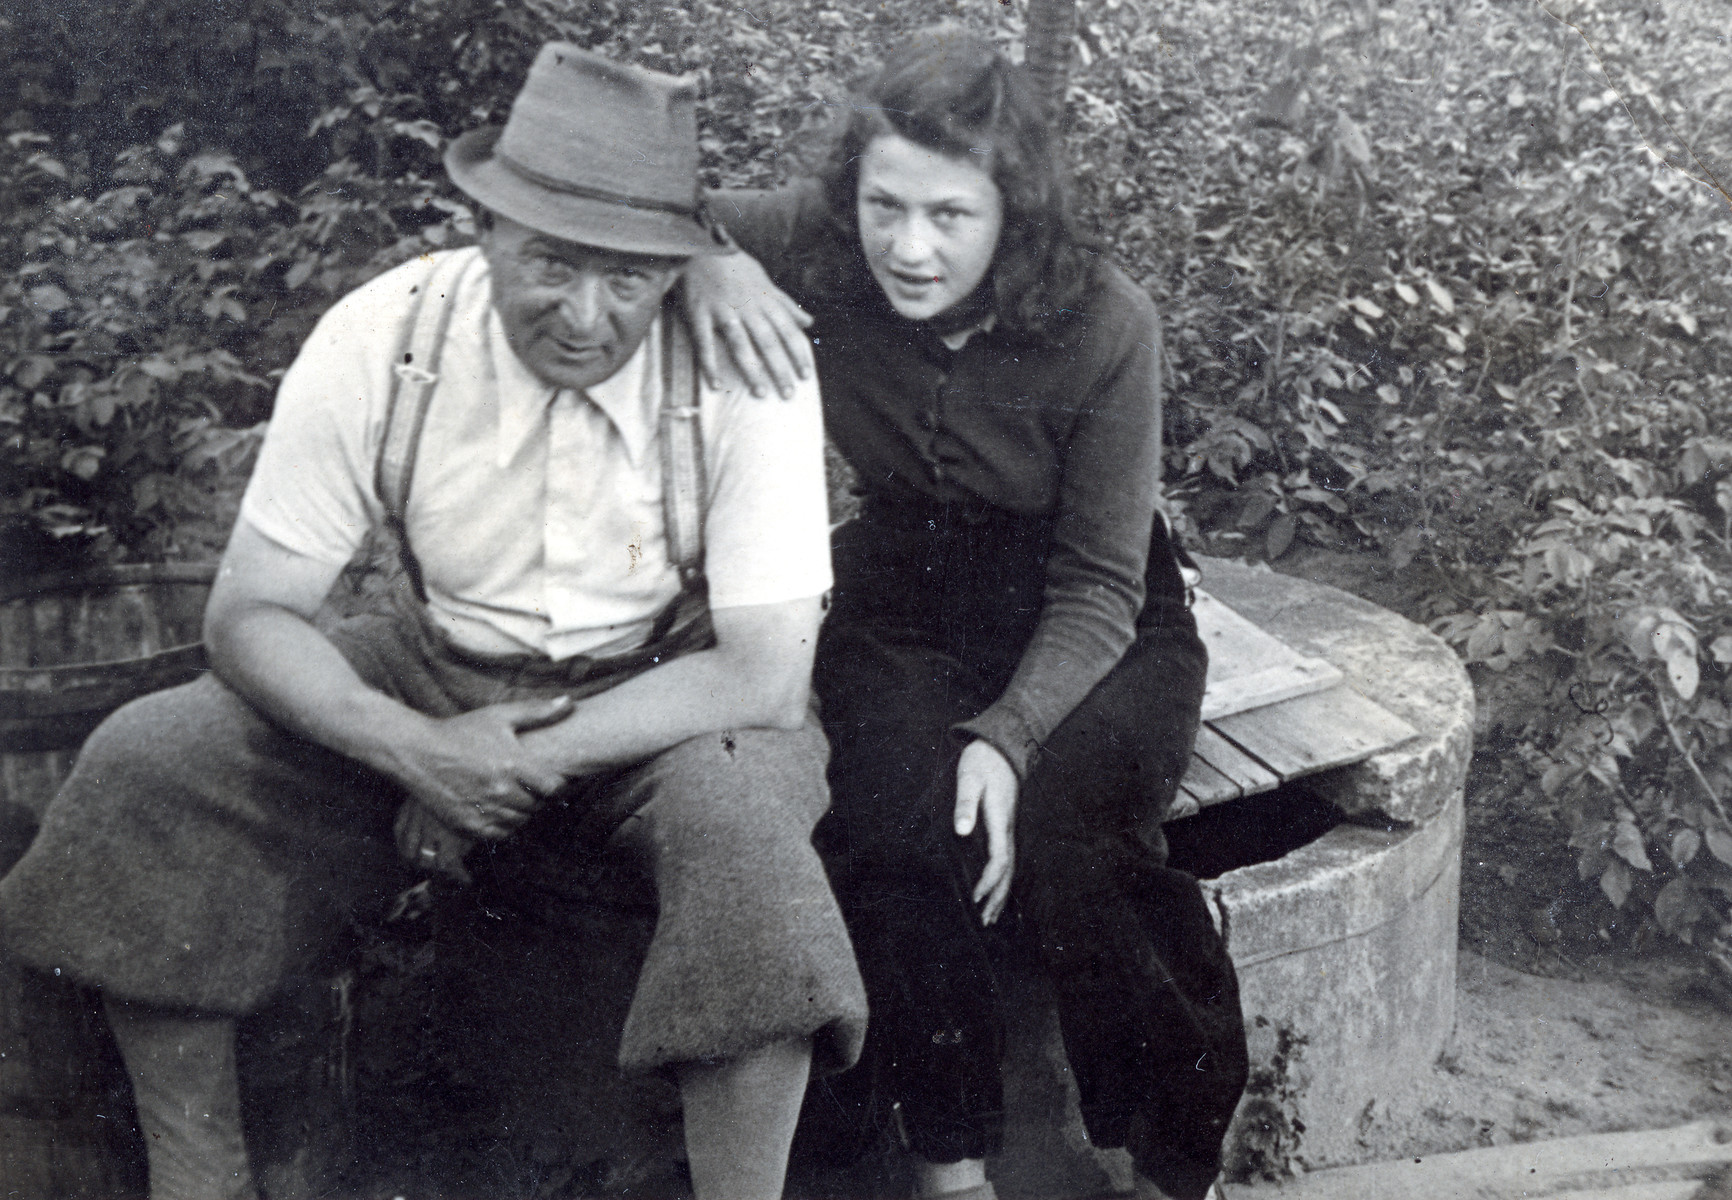 Hana Lustig poses with her father, Karel Lustig right before they were sent to Theresienstadt.